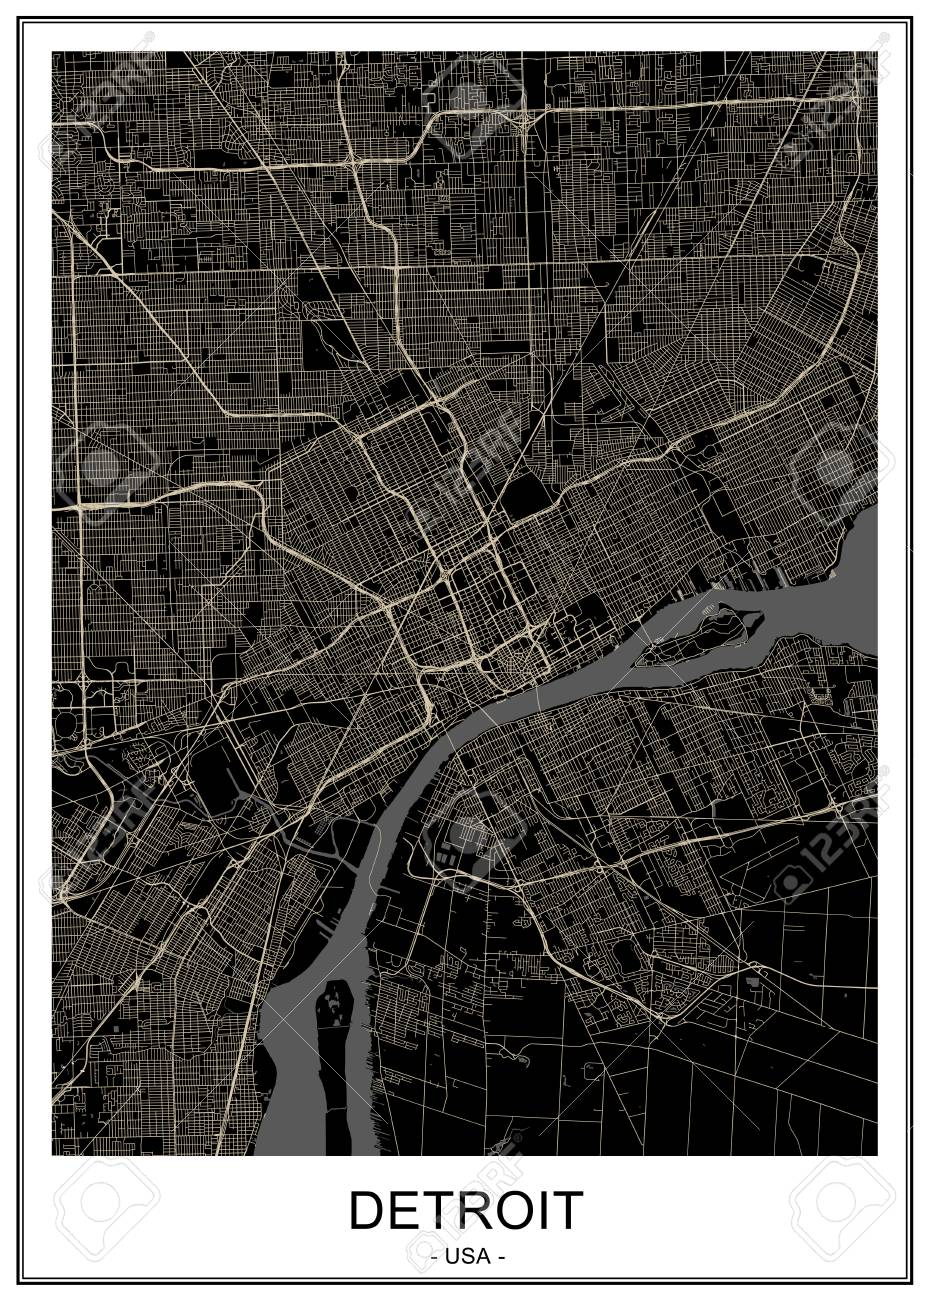 Map Of The City Of Detroit, Michigan, USA Lizenzfrei Nutzbare ... Detroit In Usa Map on